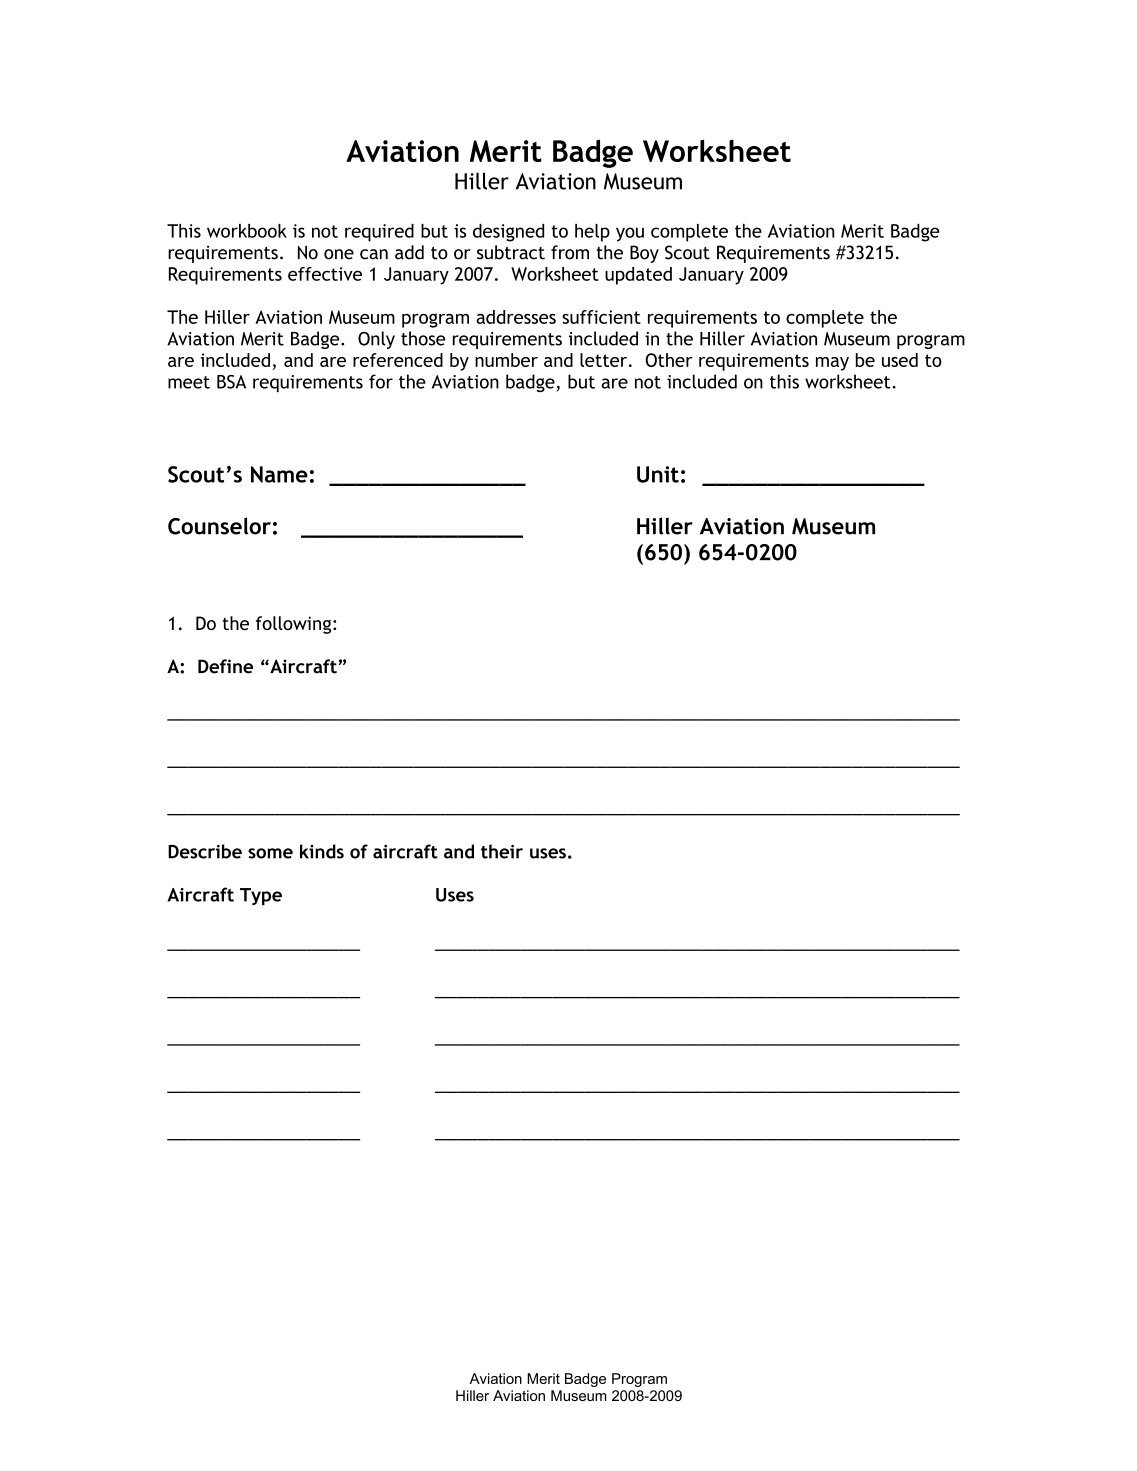 electricity merit badge worksheet Termolak – Space Exploration Merit Badge Worksheet